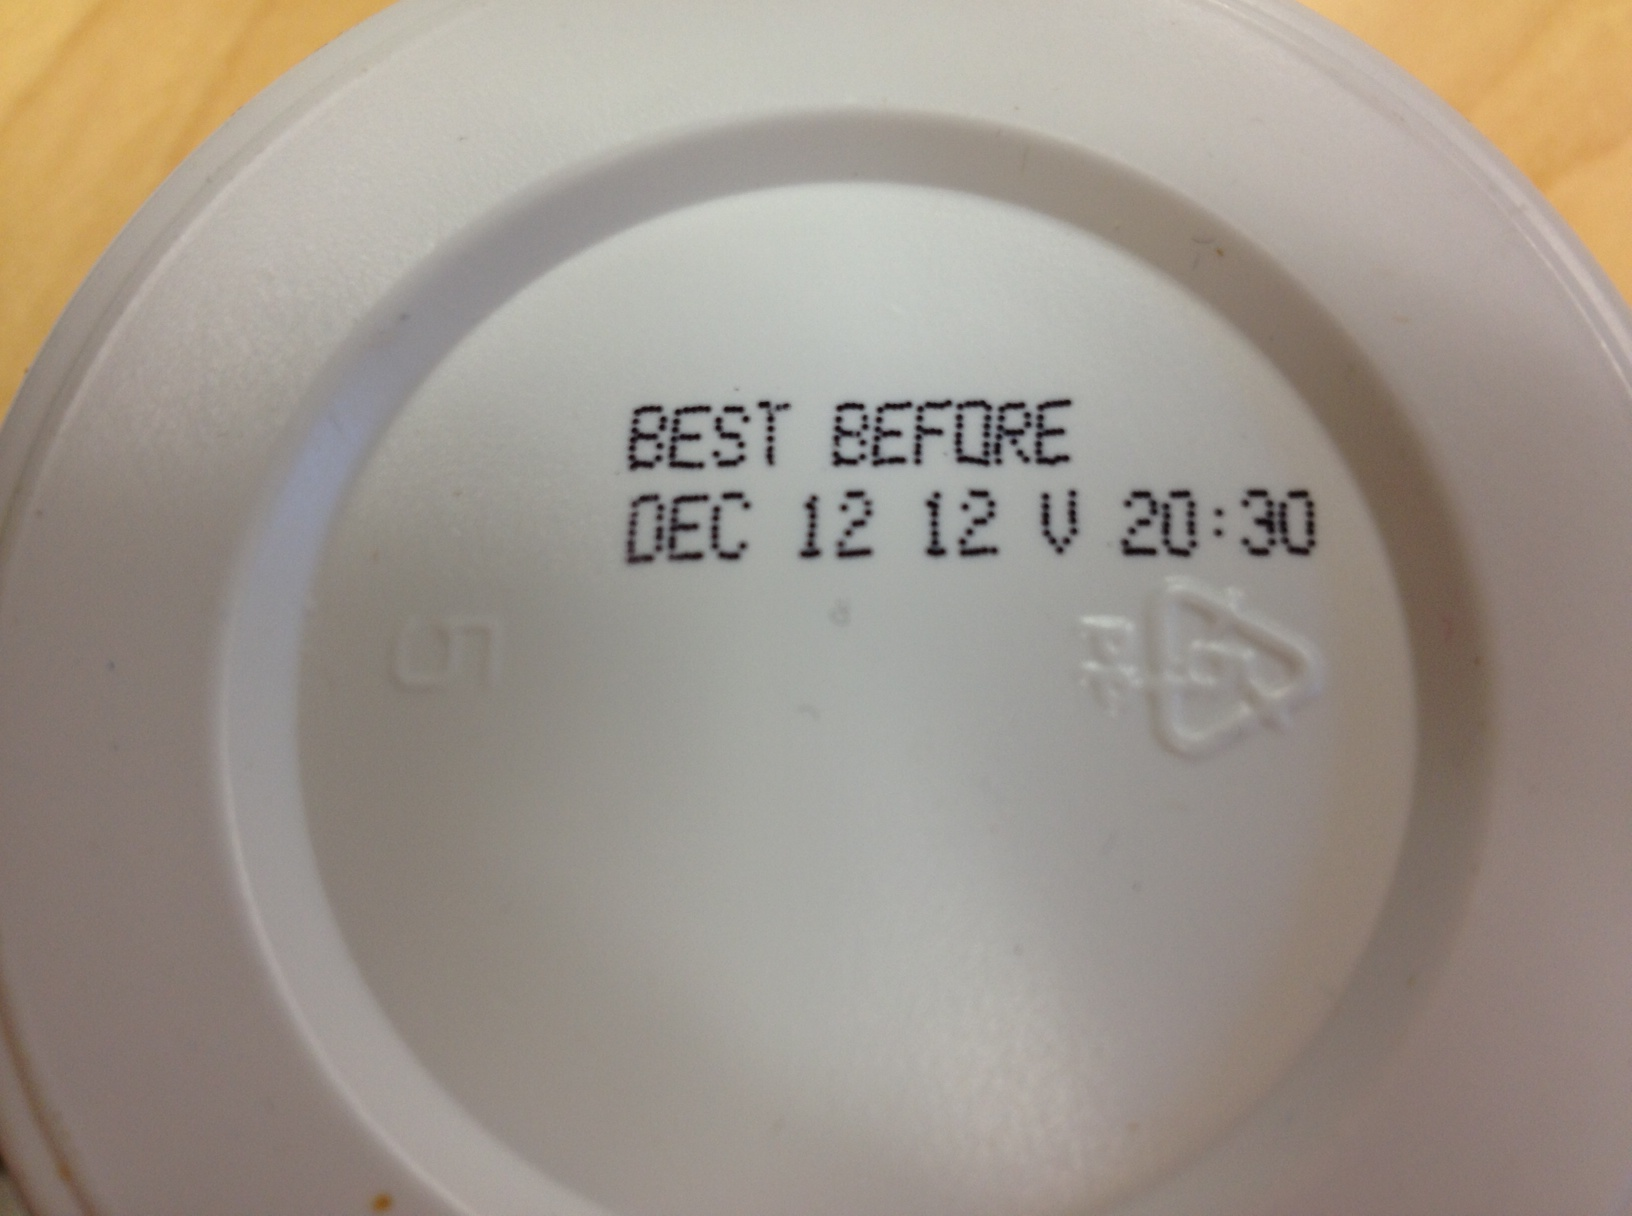 Eggs expiration date in Perth